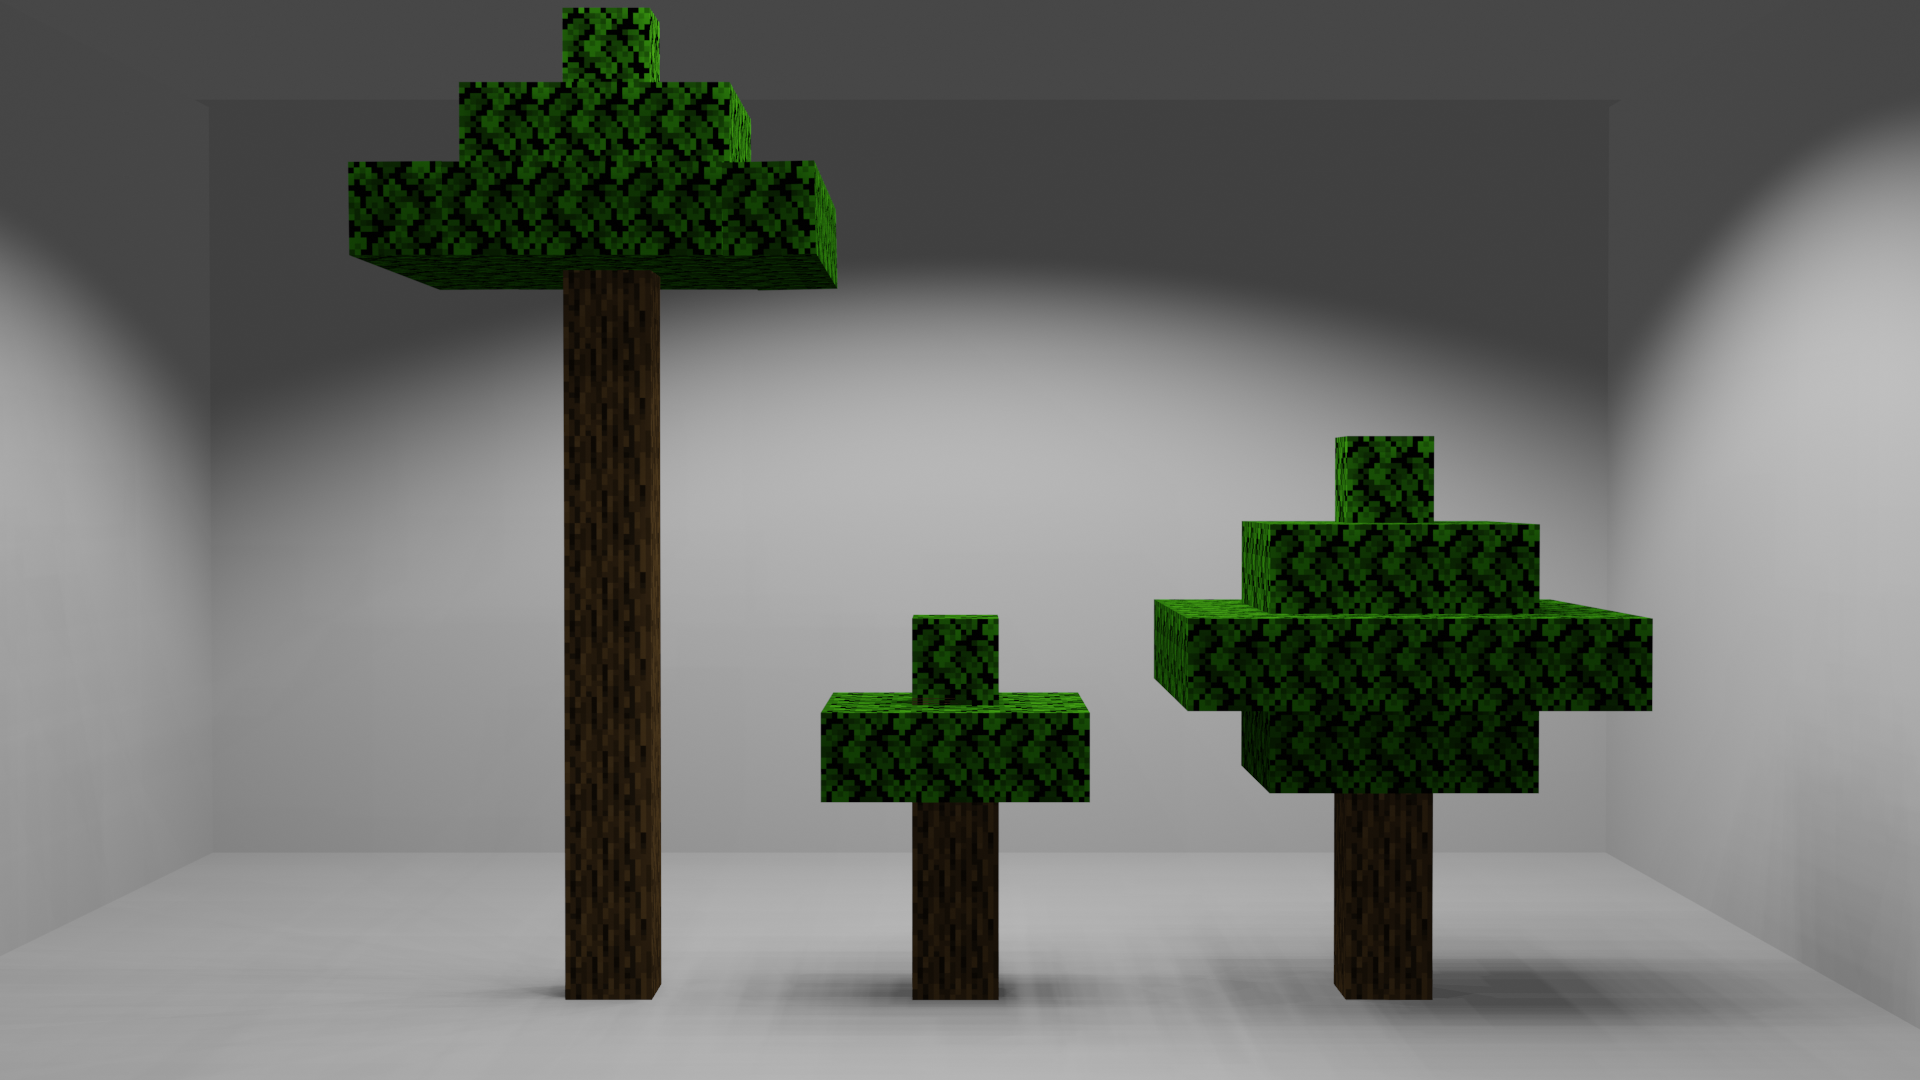 Minecraft Oak Tree preview image 1